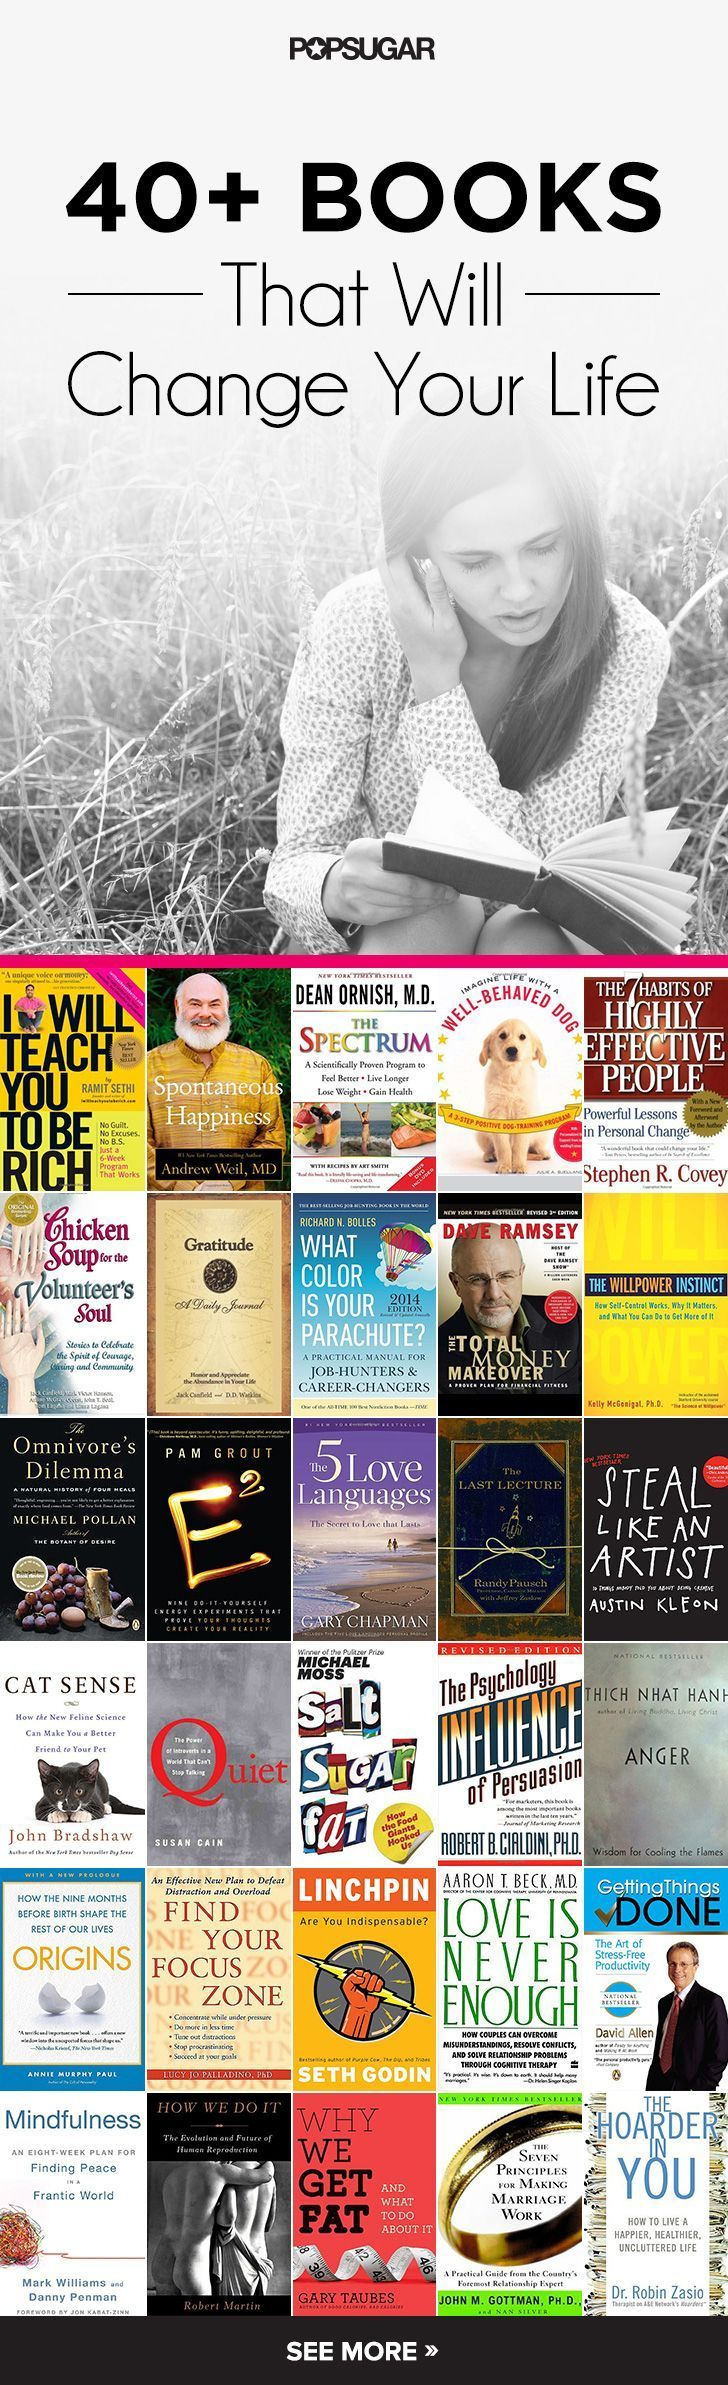 Knowledge is king. The first step to creating change in your life is to know what you're doing wrong or why you need to change. We've picked out over 40 books that will better your life in a dramatic way.